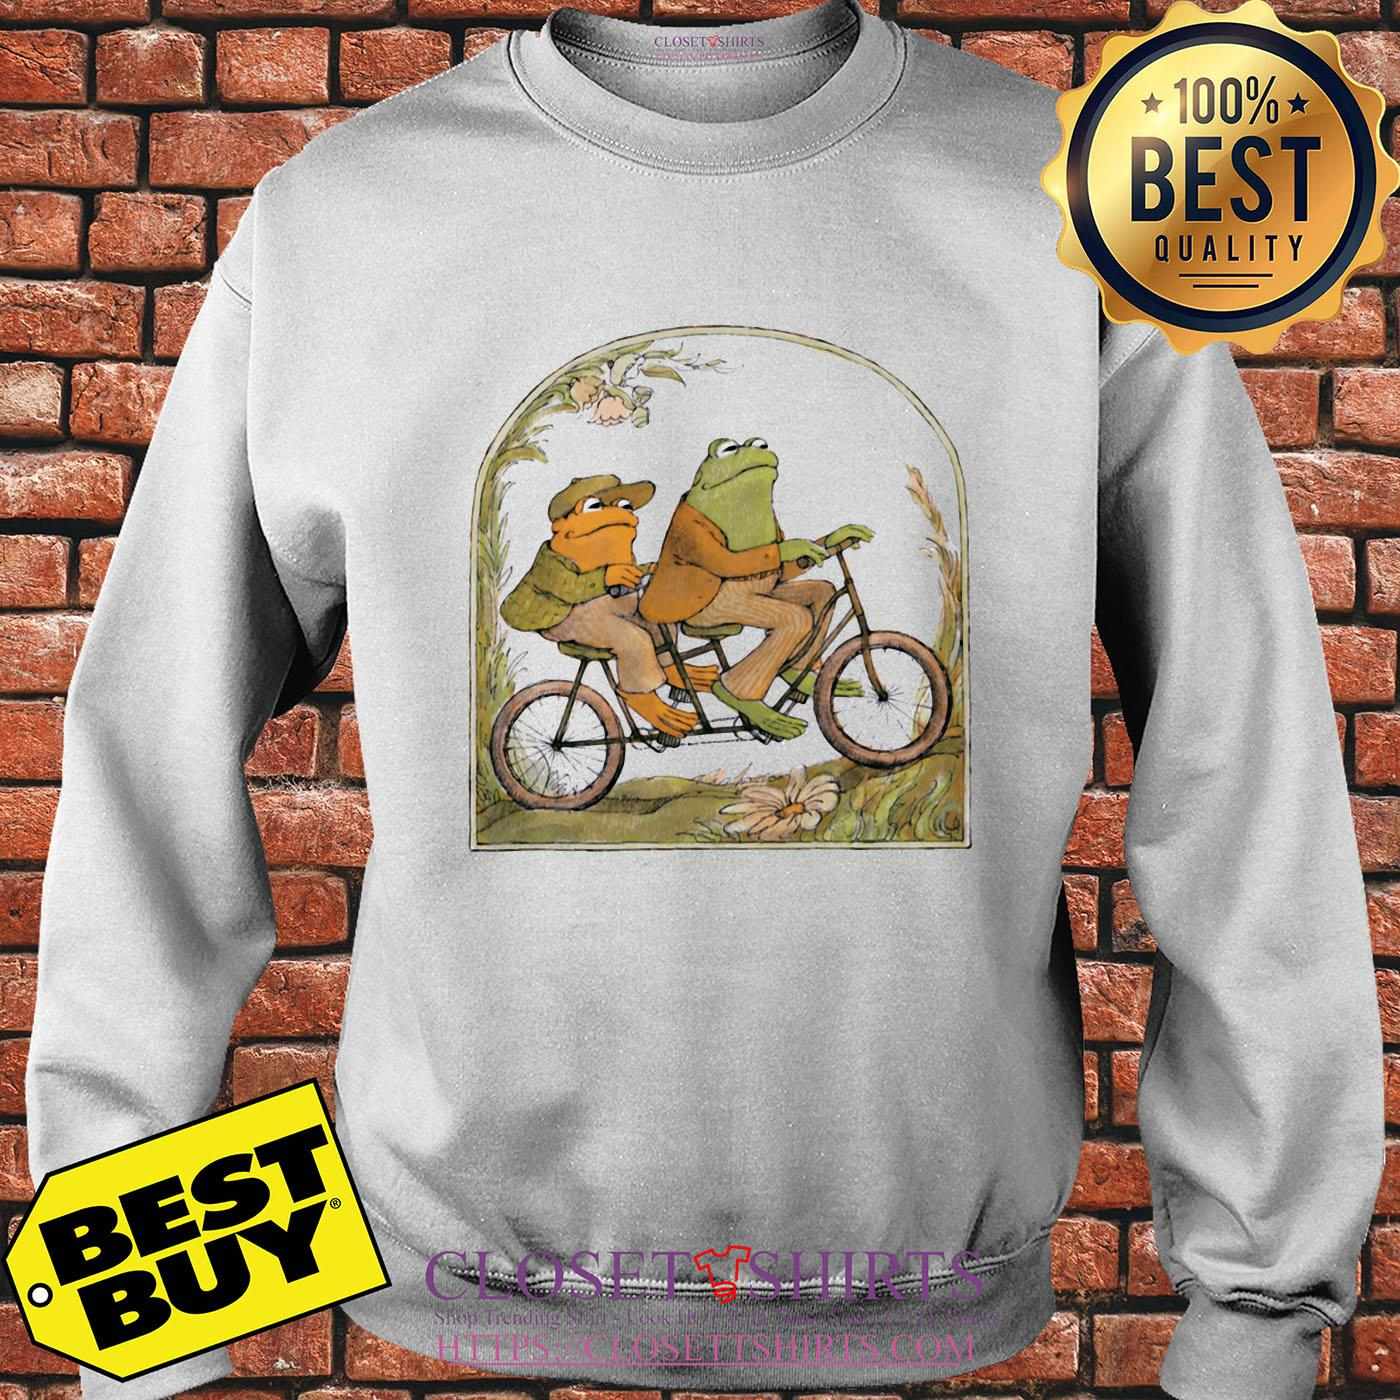 Frog And Toad Together Friends Shirt La S Tee Tank Top